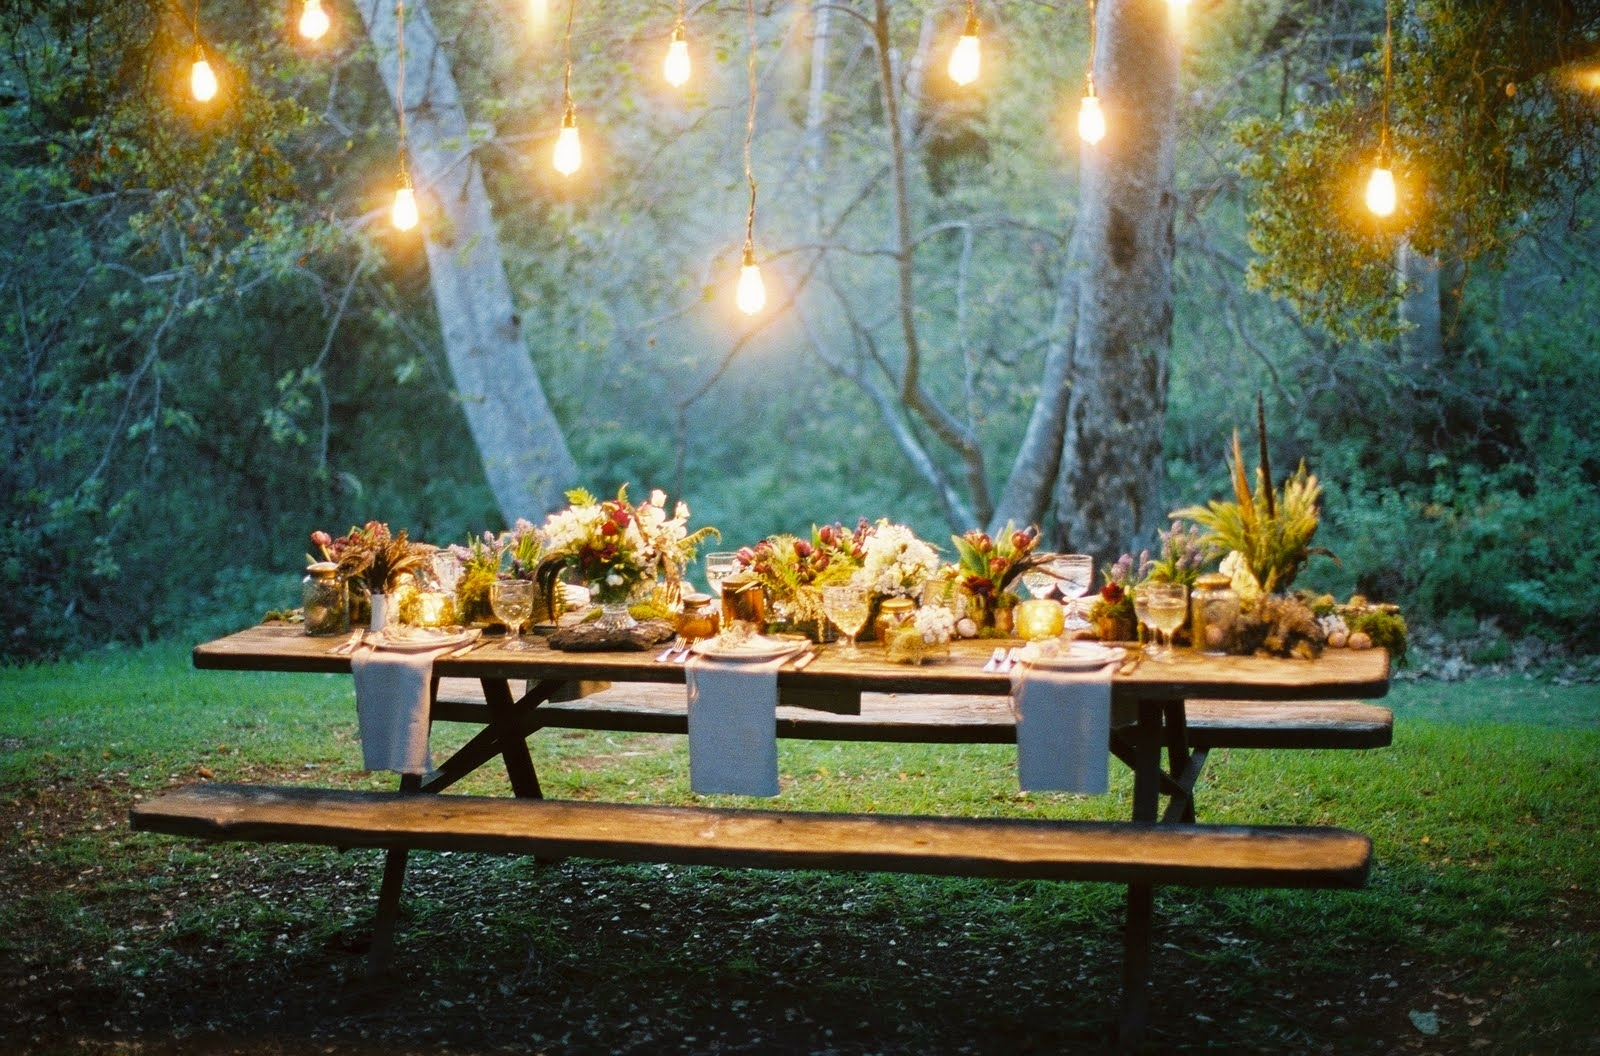 17 Best Images About Garden Party On Pinterest | Outdoor Parties for Garden Light Ideas For A Party